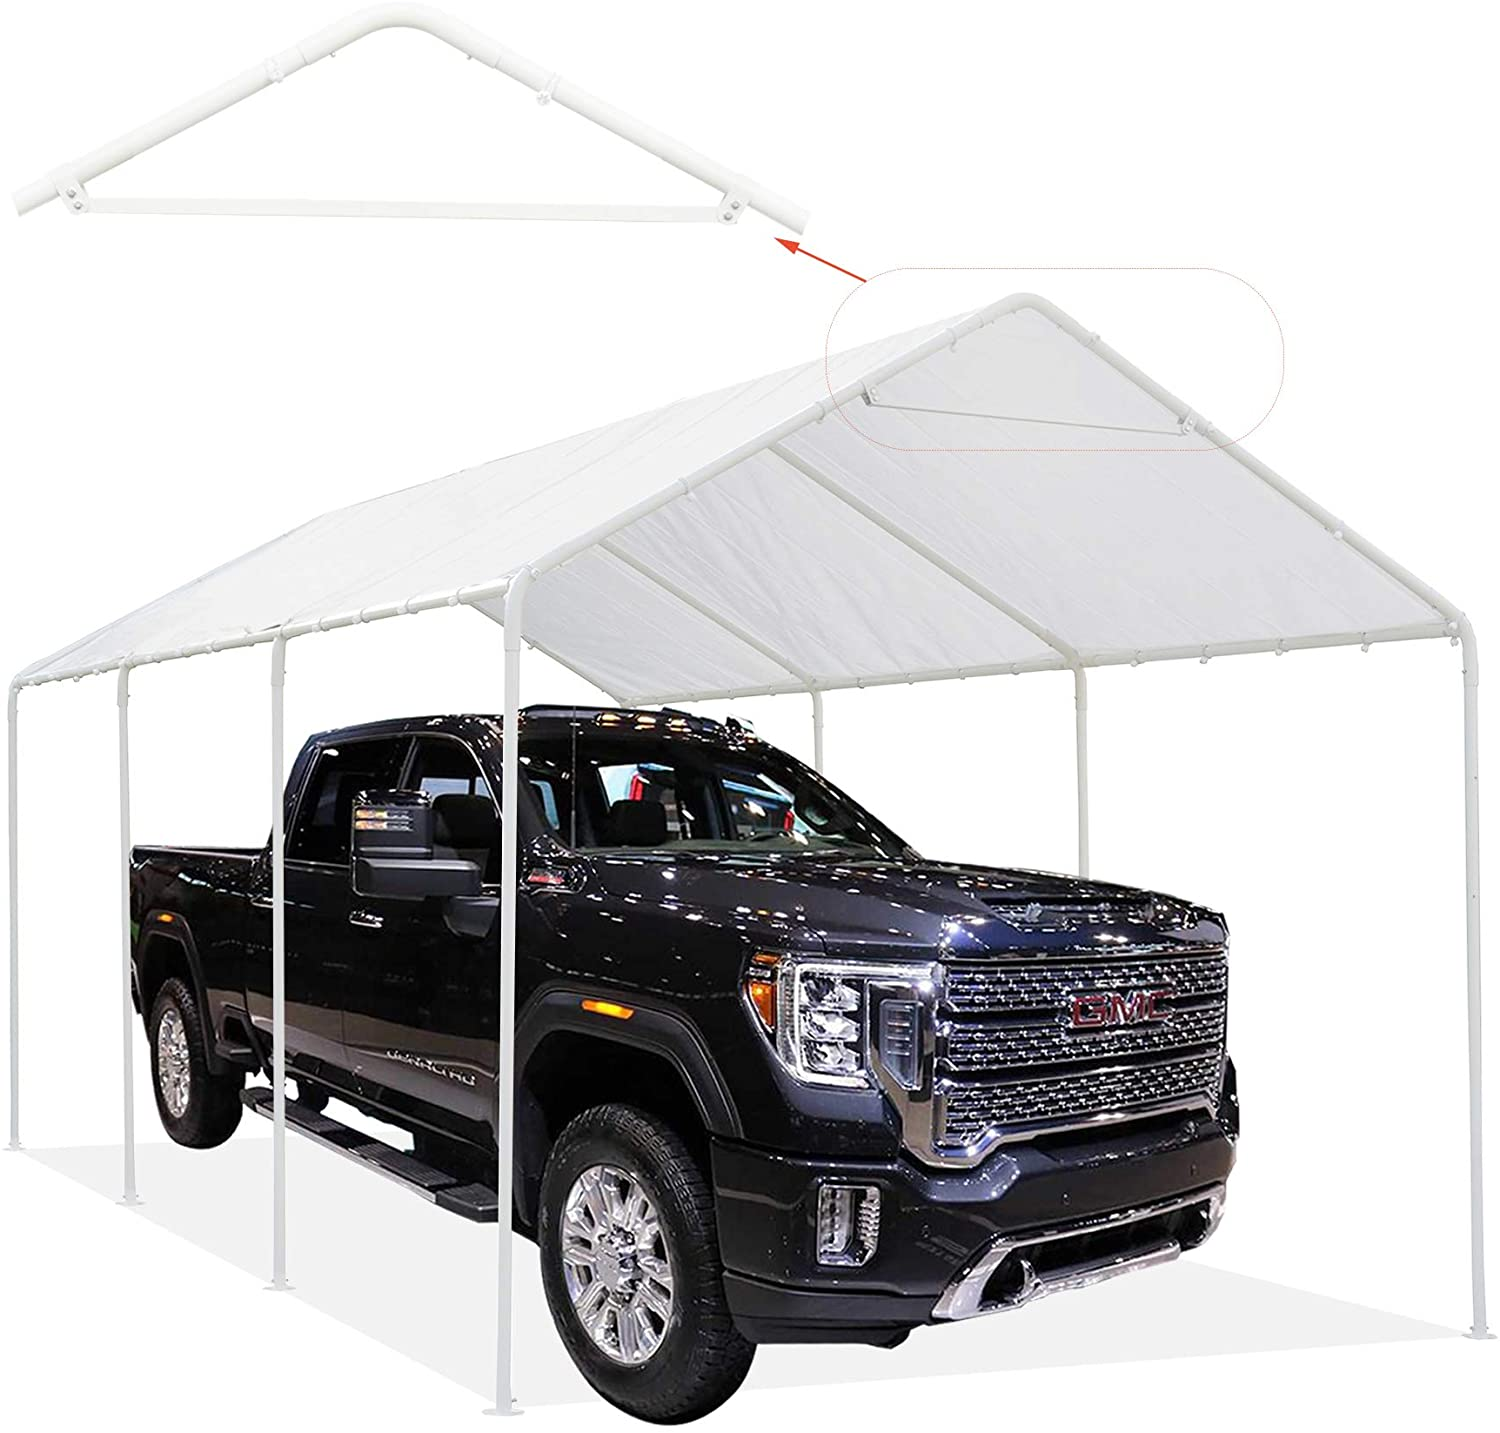 Thanaddo Heavy Duty Carport 10 x 20 Ft Outdoor Canopy Portable Garage Boat Shelter Tent for Party, Banquet and Patio Garden Storage Shed Waterproof Anti-UV 8 Steel Legs White Awning